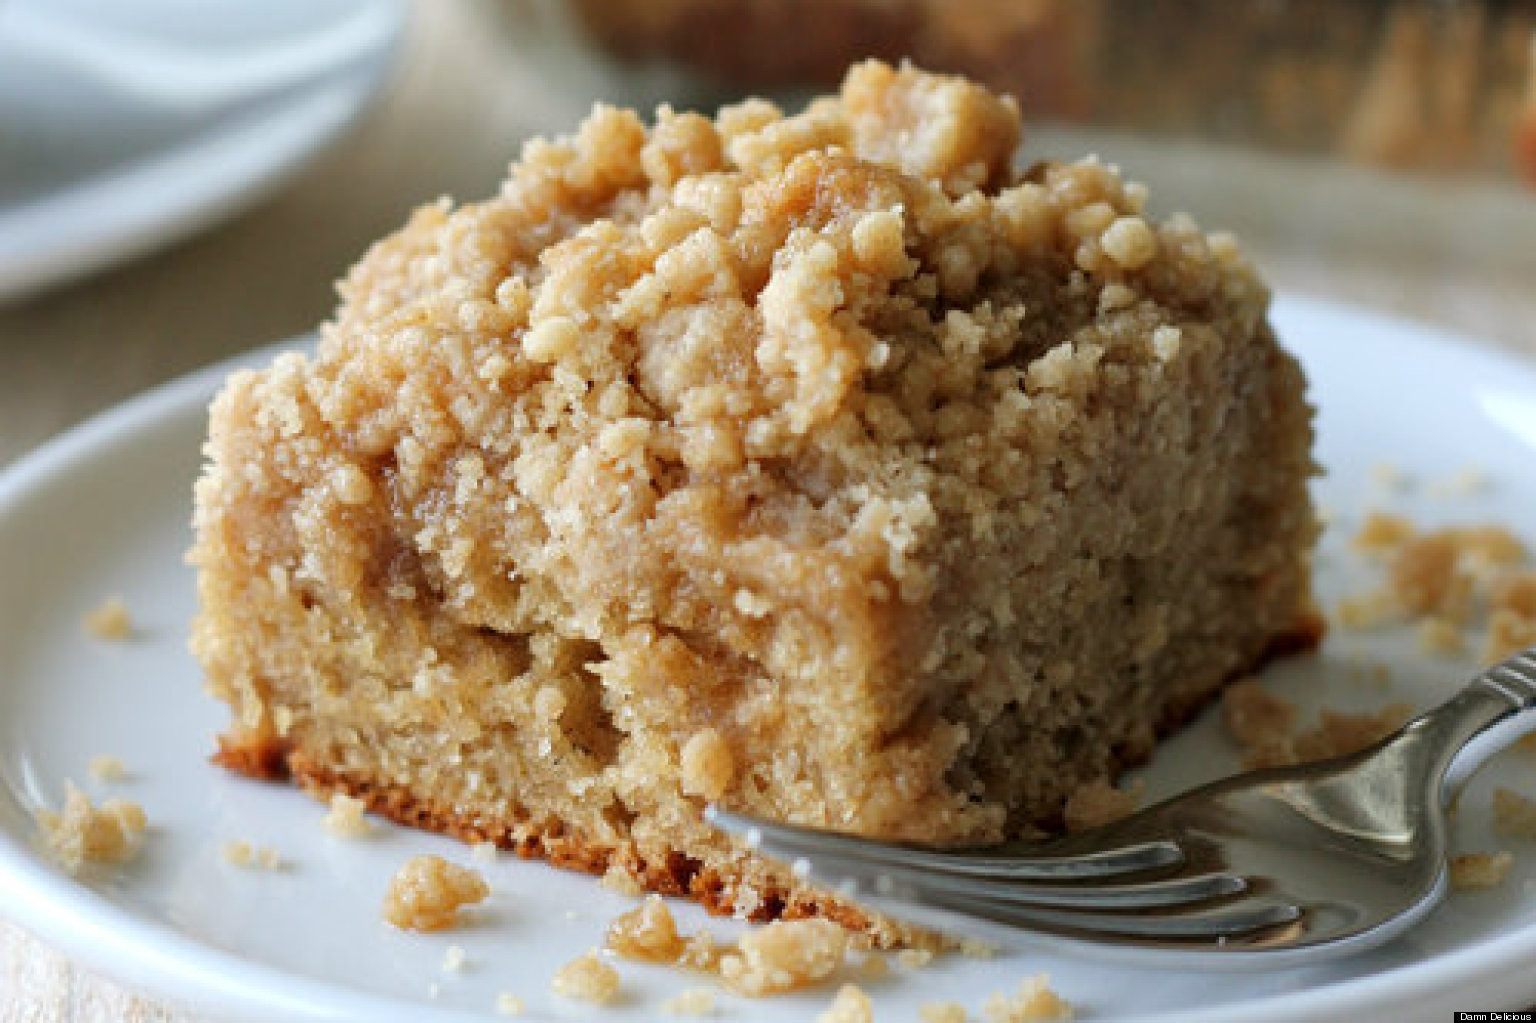 Coffee Cake Recipes  The Most Delicious Coffee Cake Recipes You ll Find PHOTOS